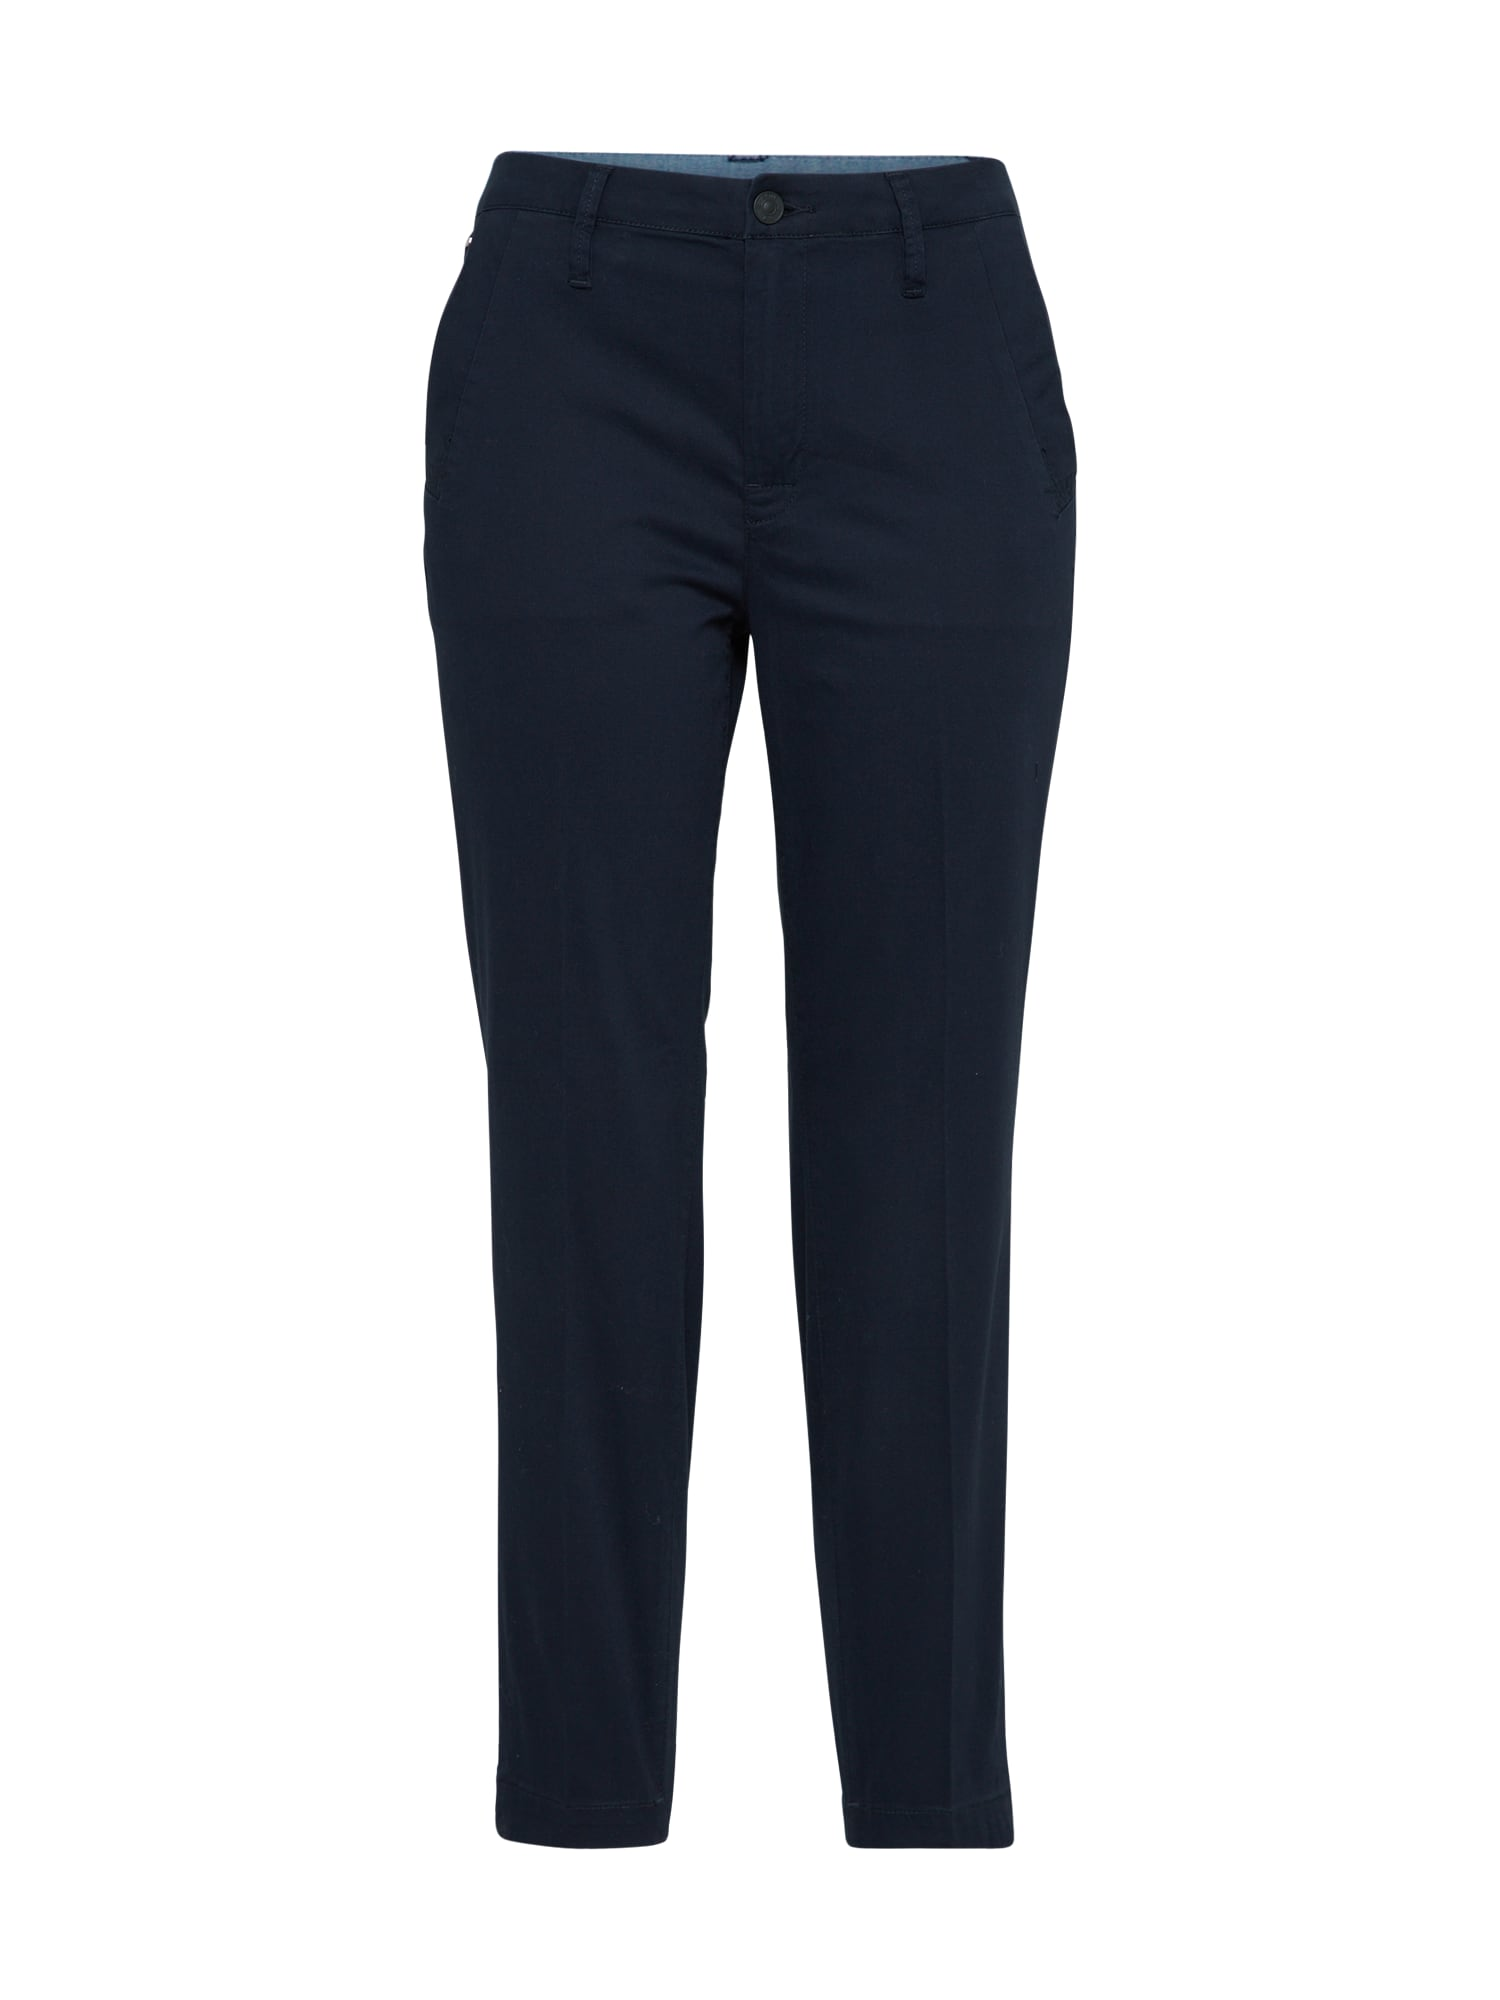 G-STAR RAW Dames Chino Bronson blauw